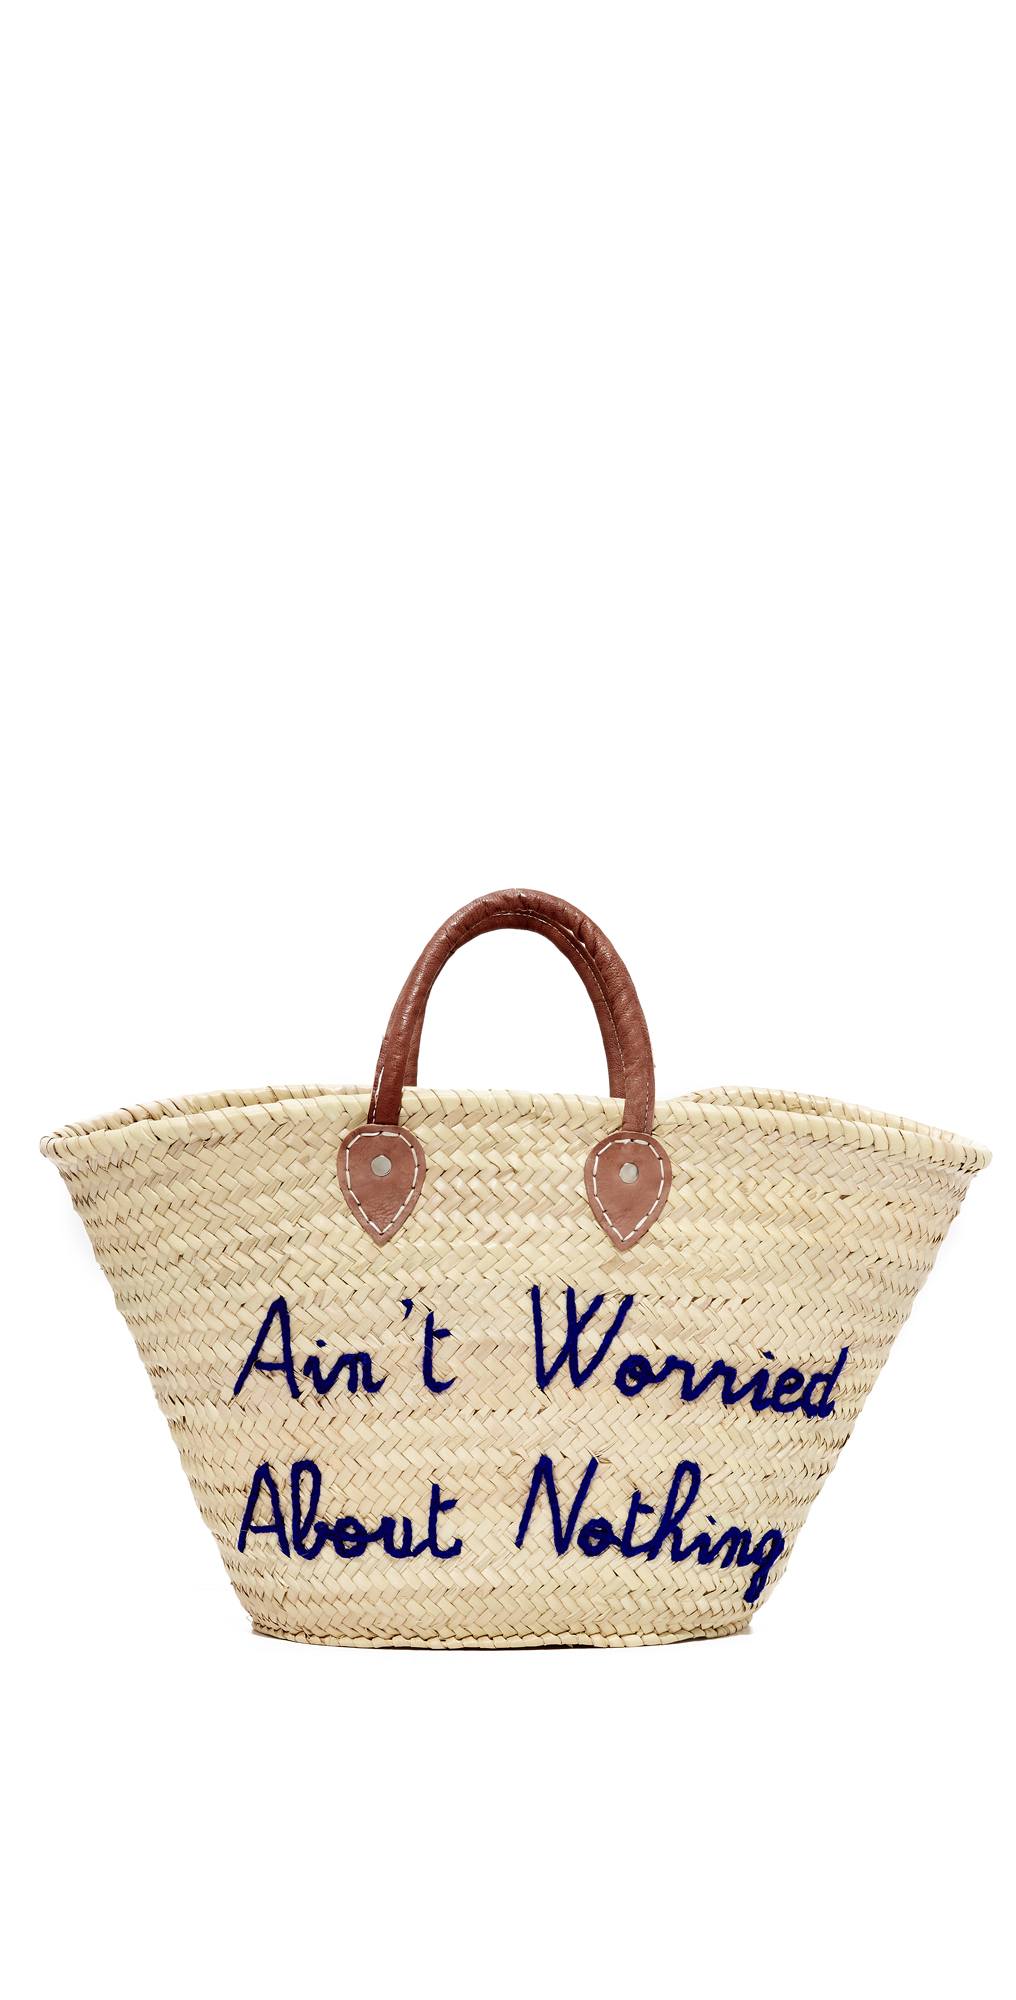 Ain't Worried About Nothing Tote Poolside Bags